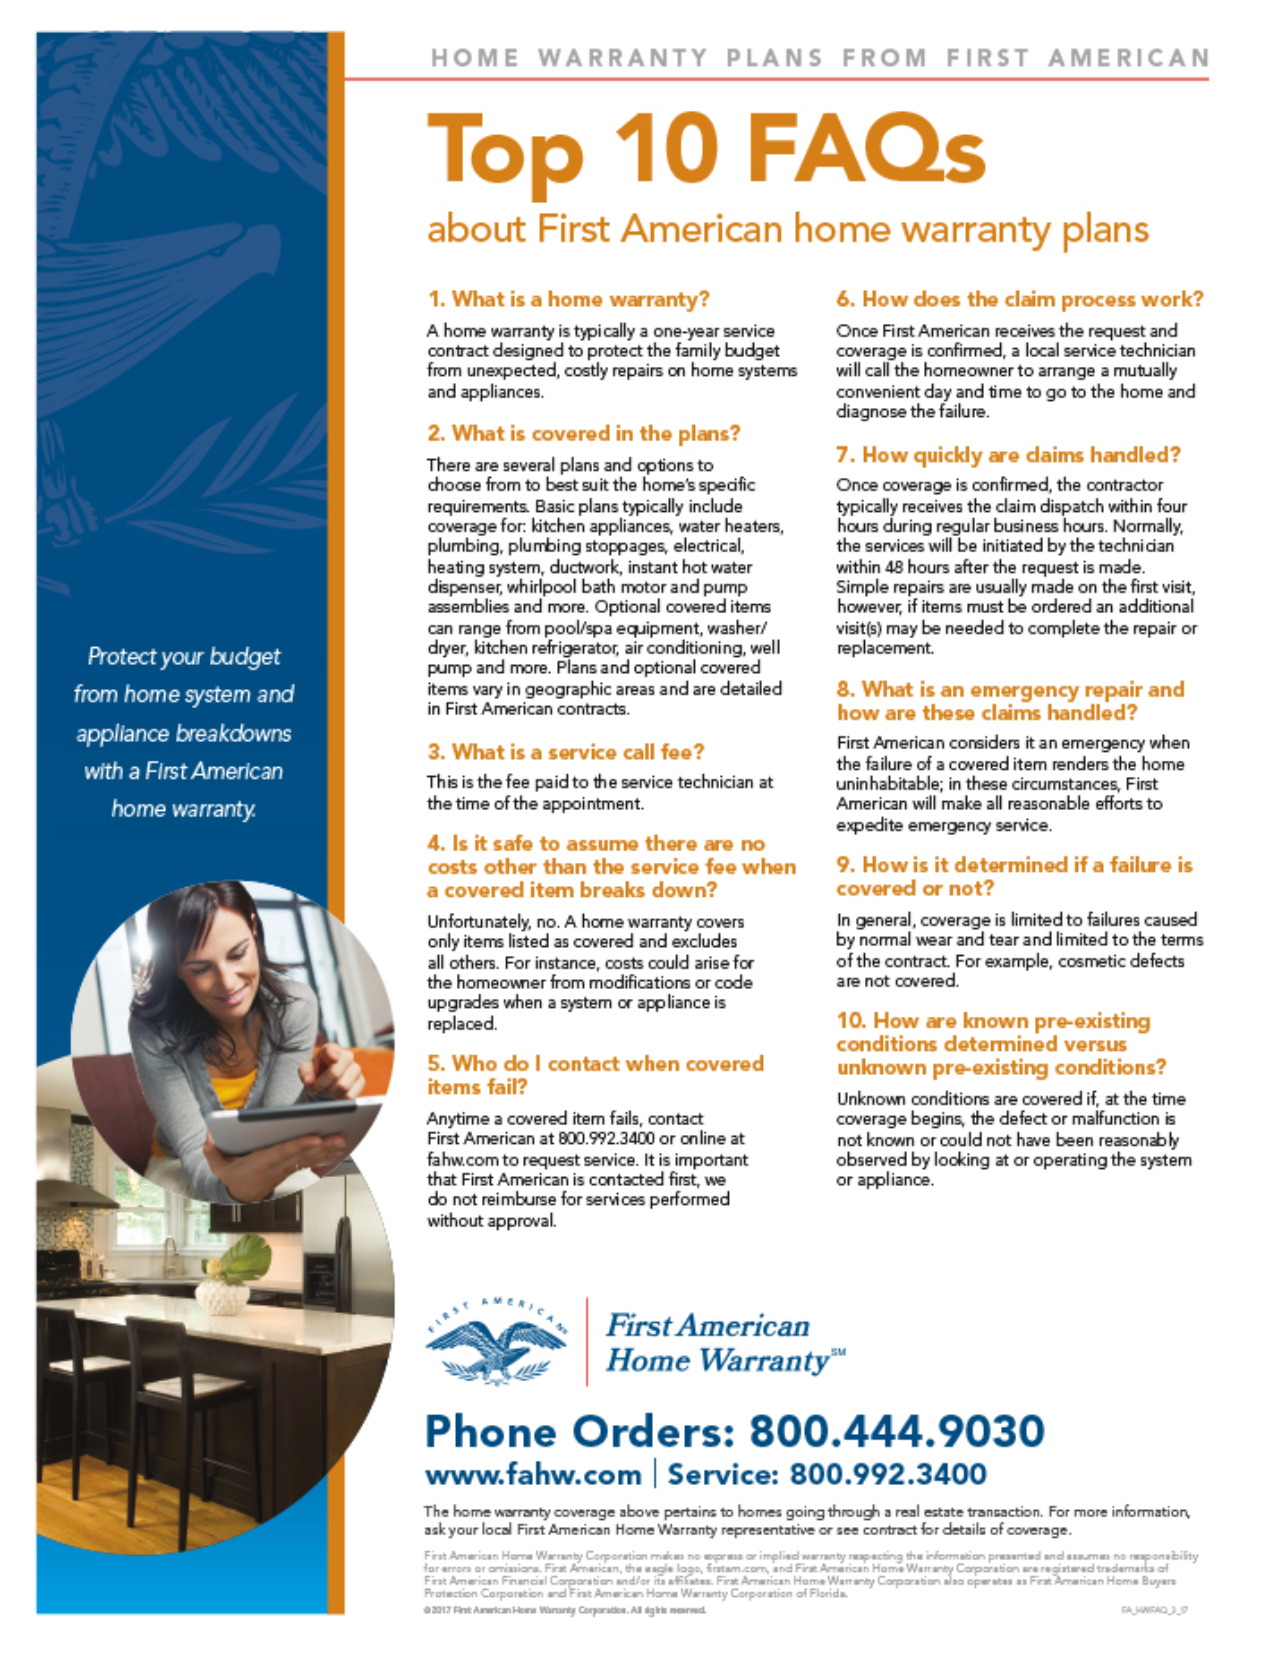 Top 10 Home Warranty Facts